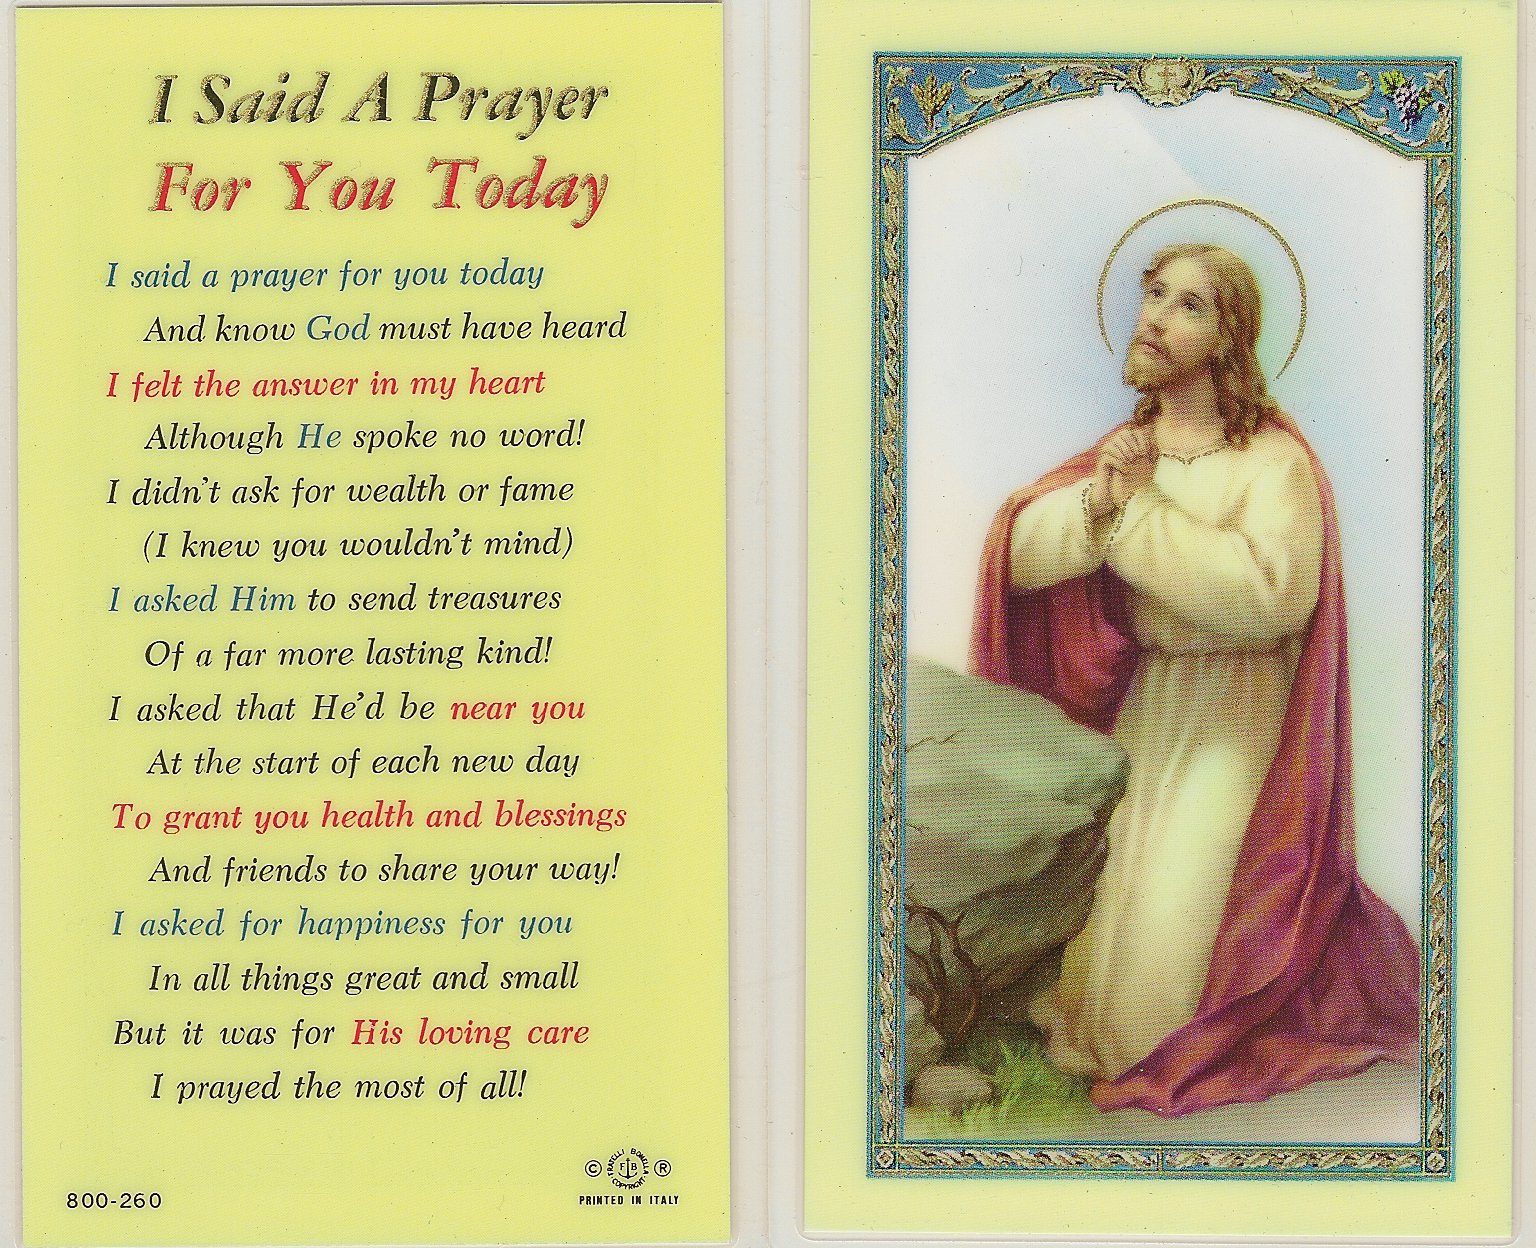 image about I Said a Prayer for You Today Printable known as Items